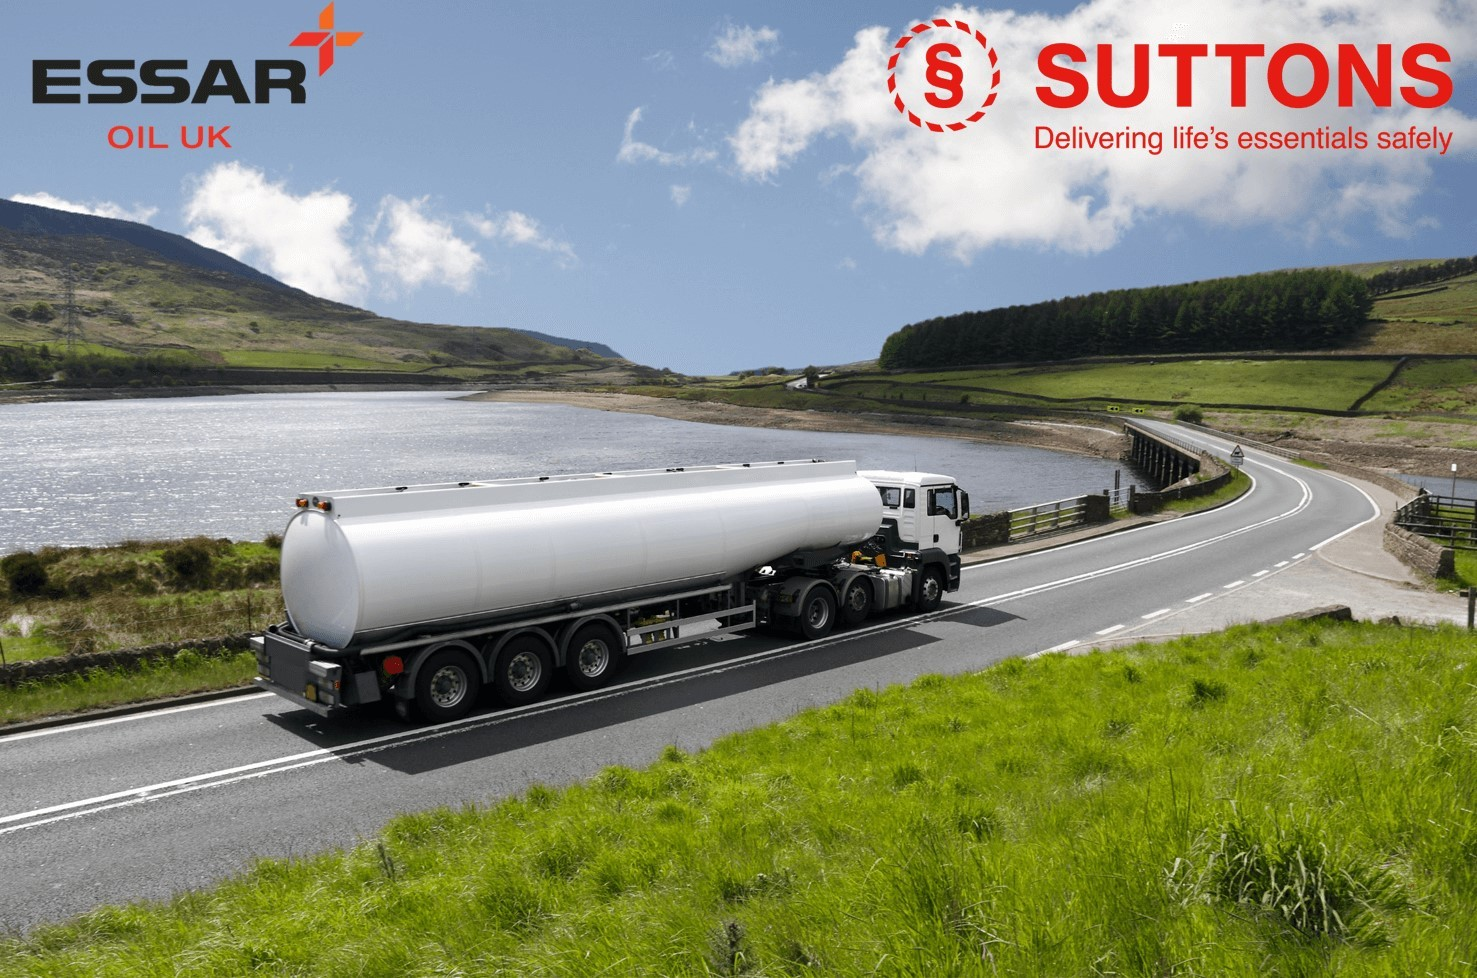 SUTTONS TANKERS WINS NEW BUSINESS CONTRACT WITH ESSAR